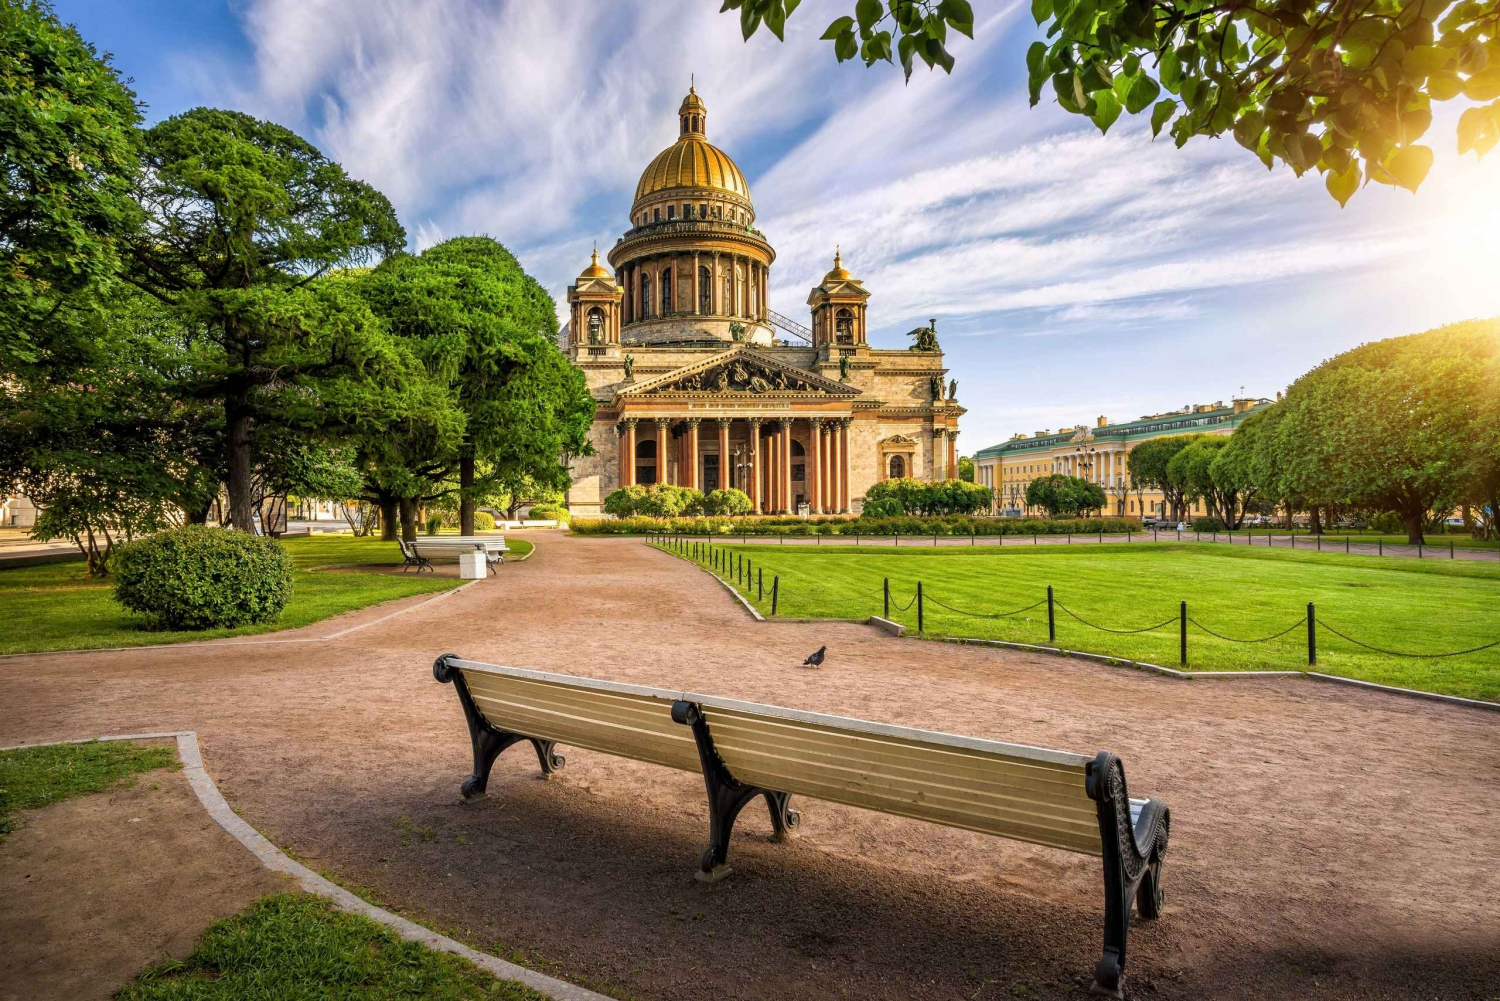 Saint Isaac's Cathedral Ticket